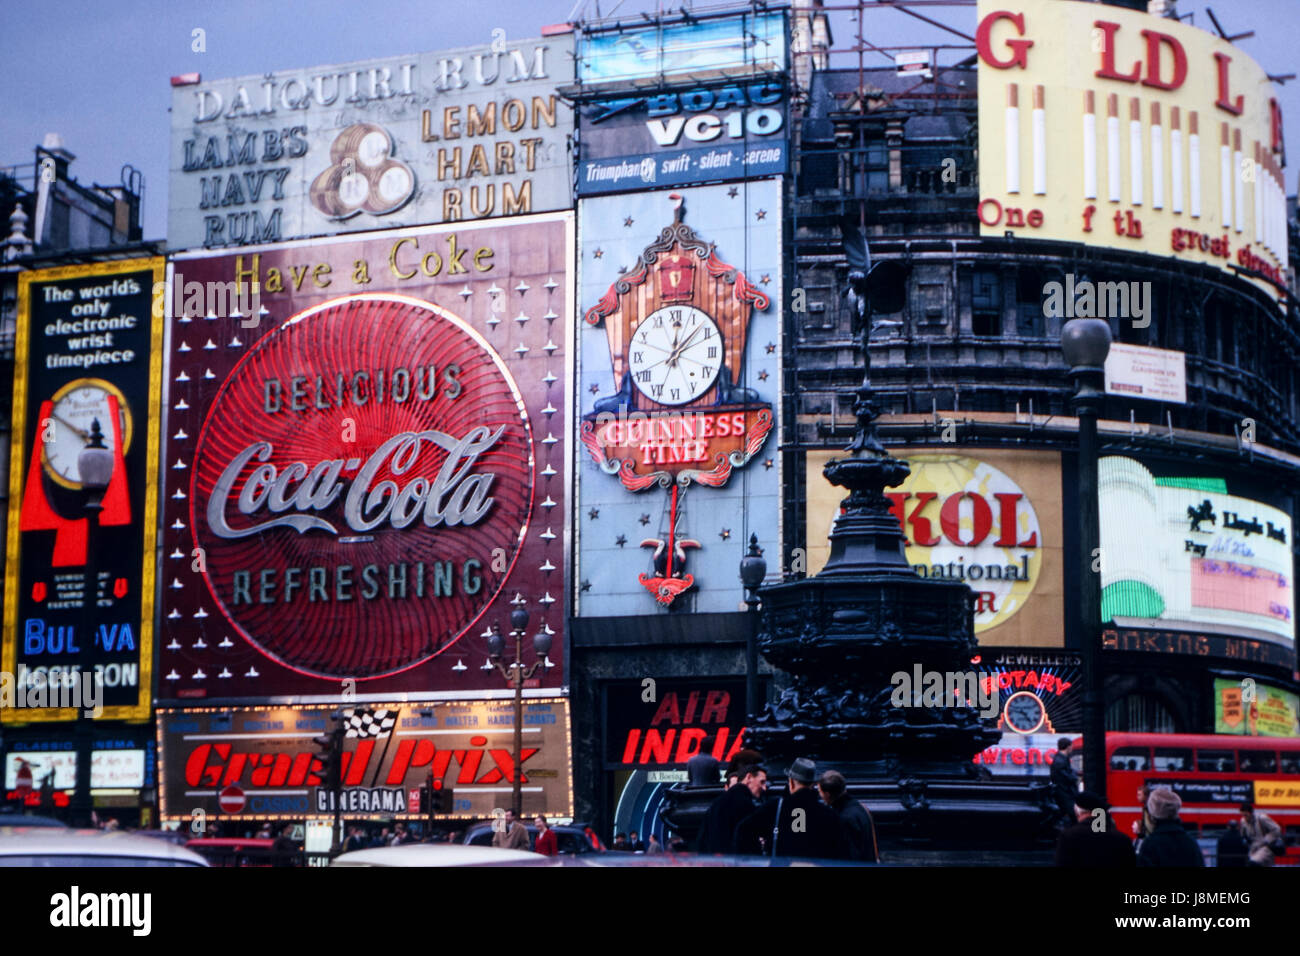 Vintage image of Piccadilly Circus in London taken in April 1967 showing various billboards of the time - Stock Image